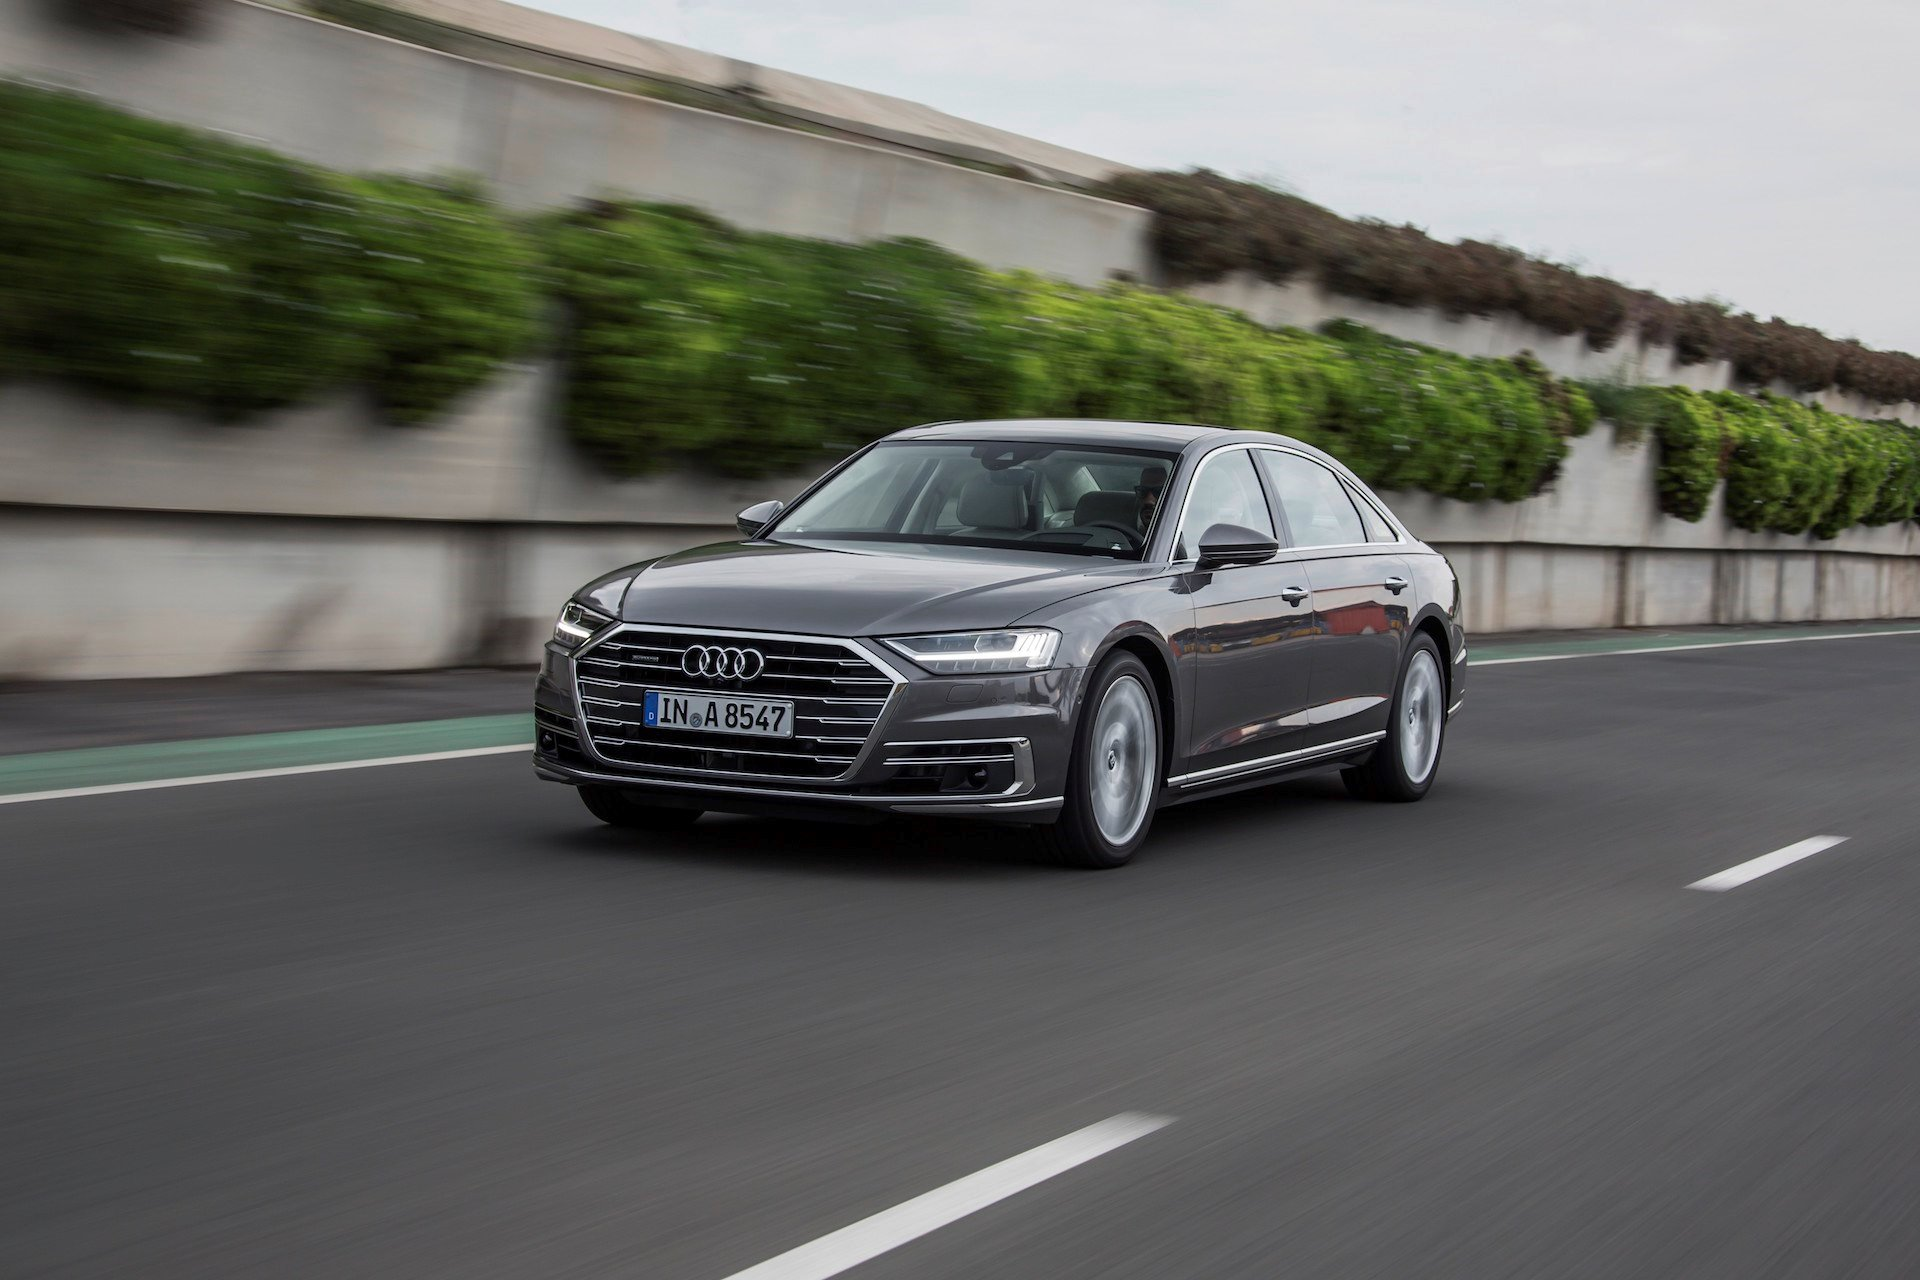 New 2019 Audi A8 L 3.0T quattro 3.0T quattro for sale $83,800 at M and V Leasing in Brooklyn NY 11223 1